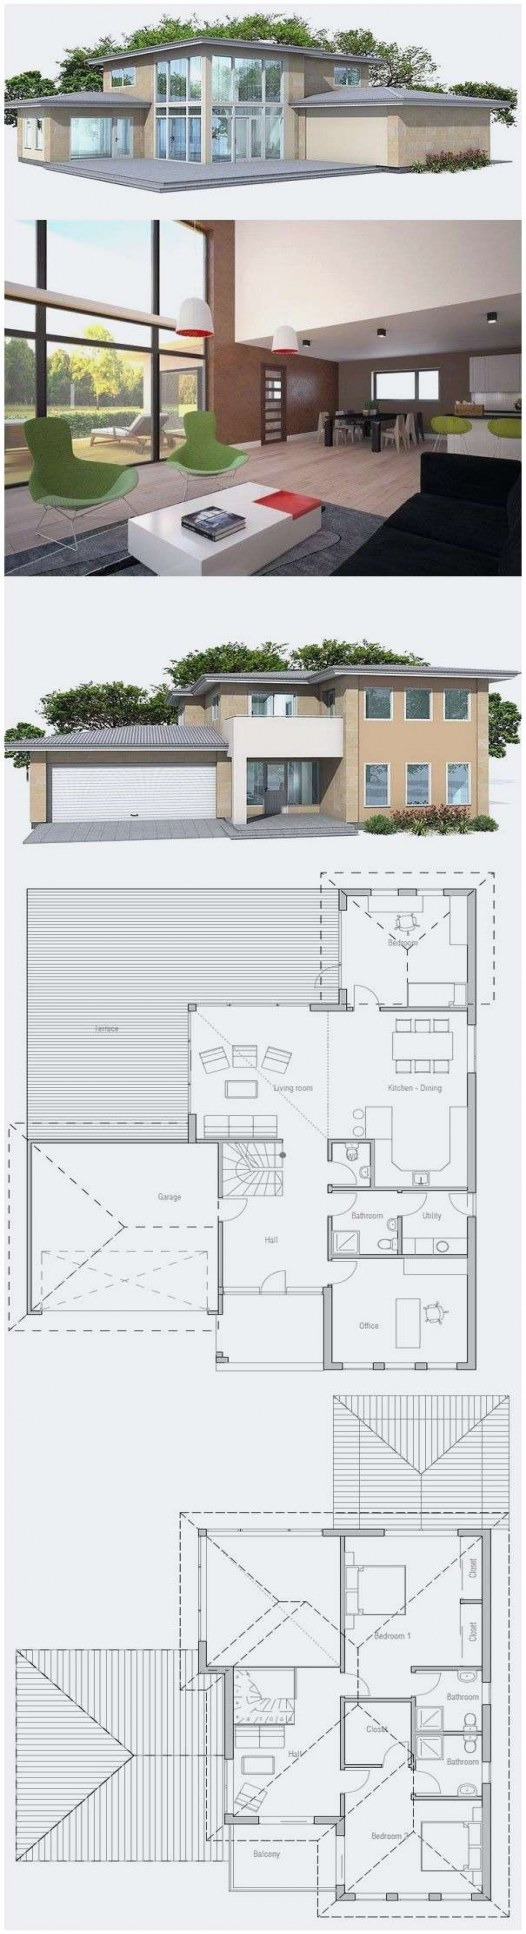 Modern House Plans for Sale 2020